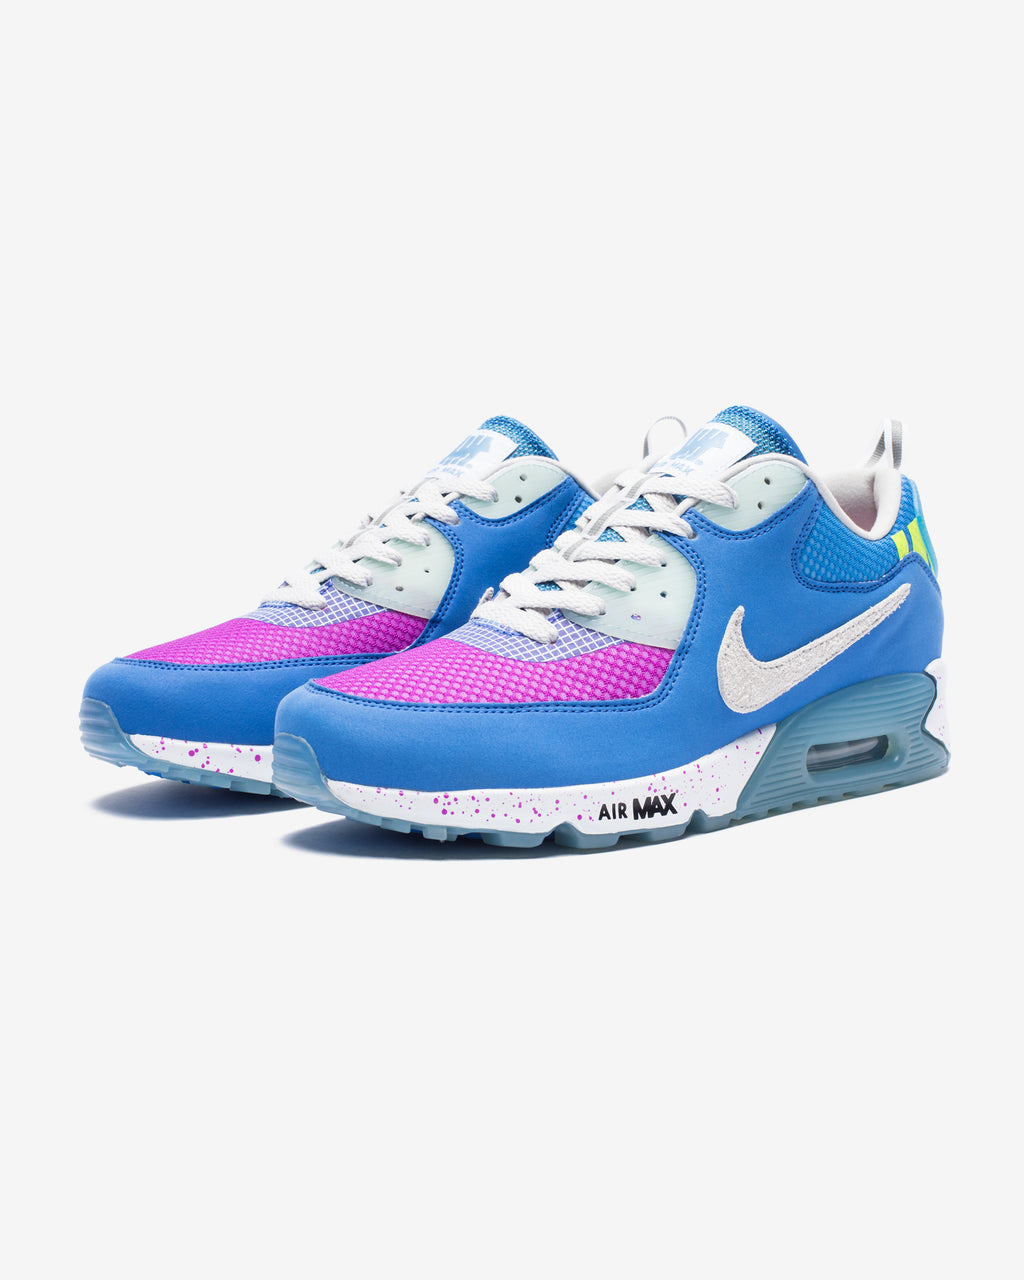 NIKE X UNDEFEATED AIR MAX 90 - PACIFICBLUE/ VIVIDPURPLE